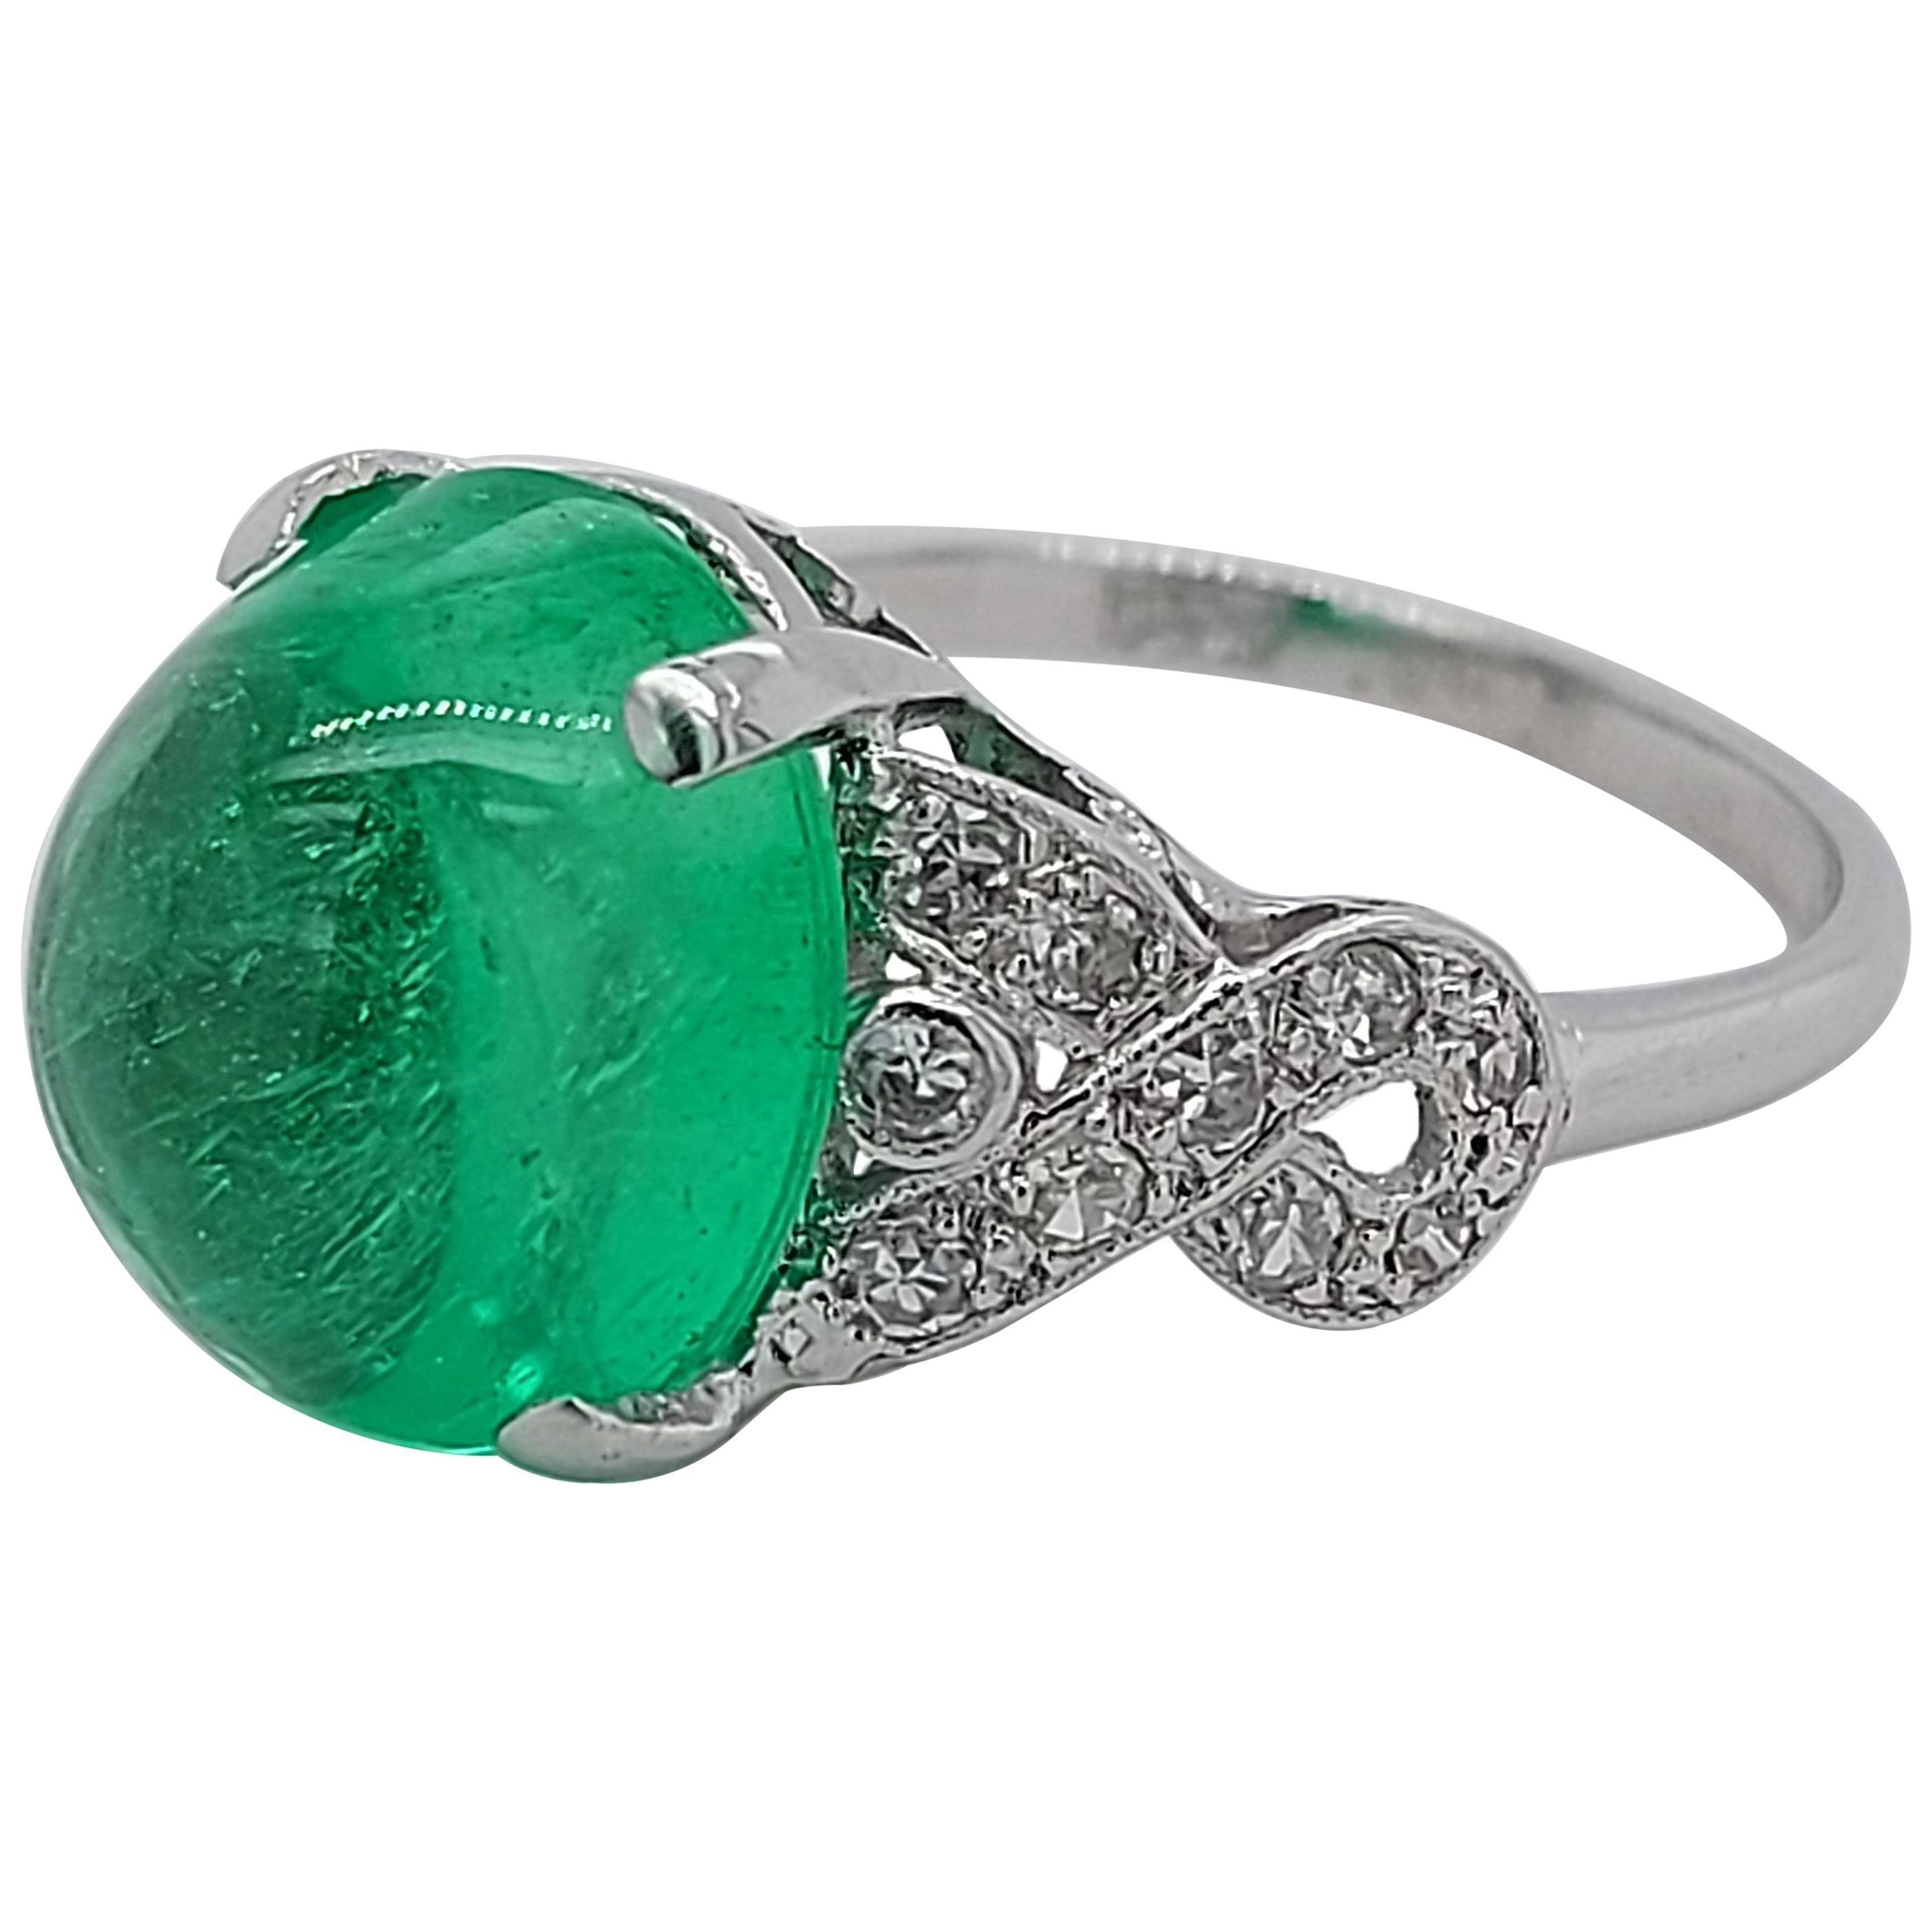 Platinum Art Deco Ring with Colombian Cabochon Emerald and Diamonds